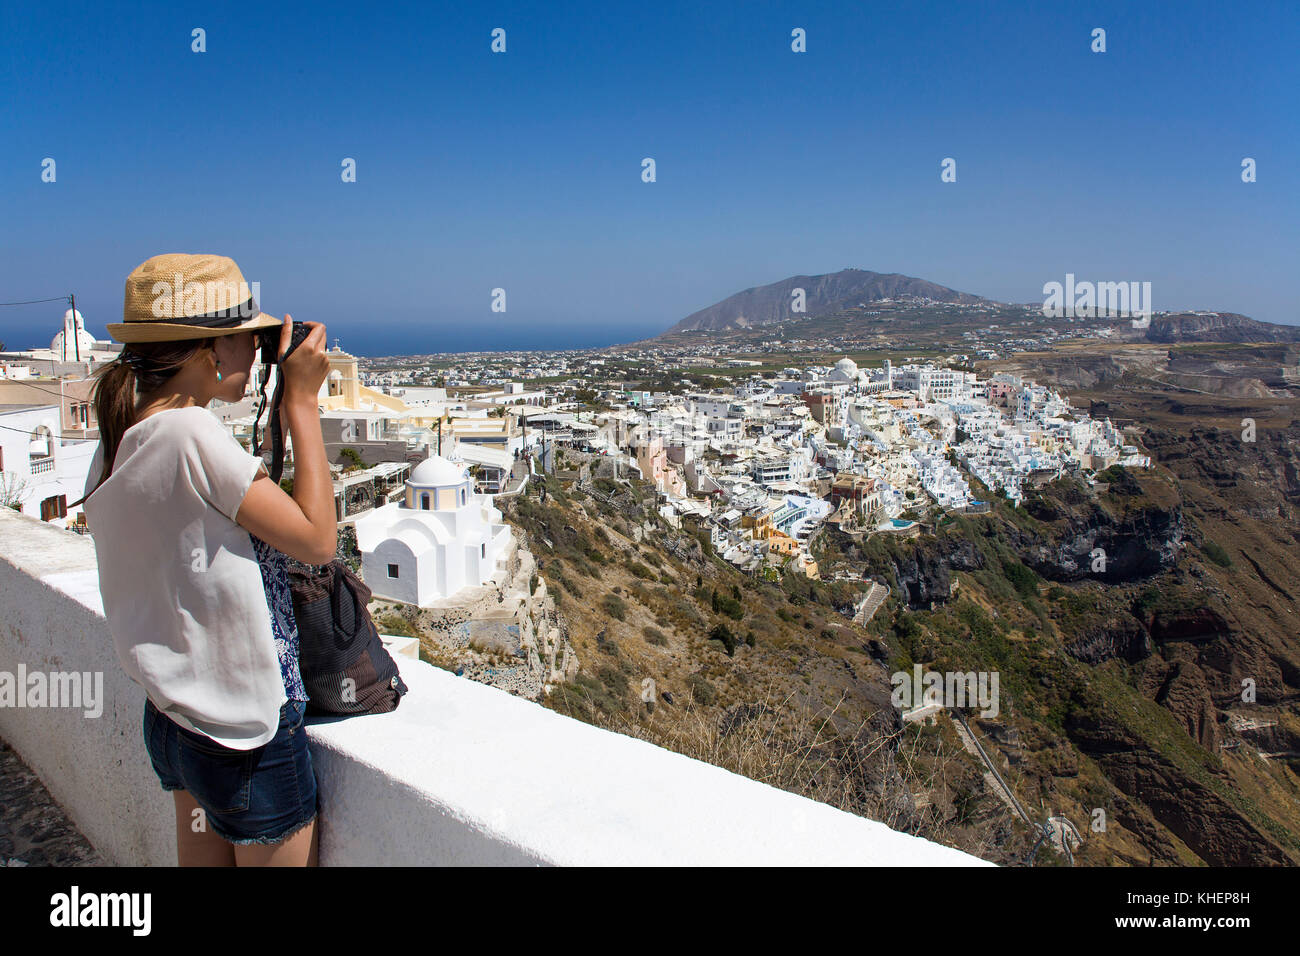 Woman photographing at a view point, crater edge path at the town Thira, Santorin island, Cyclades, Aegean, Greece Stock Photo